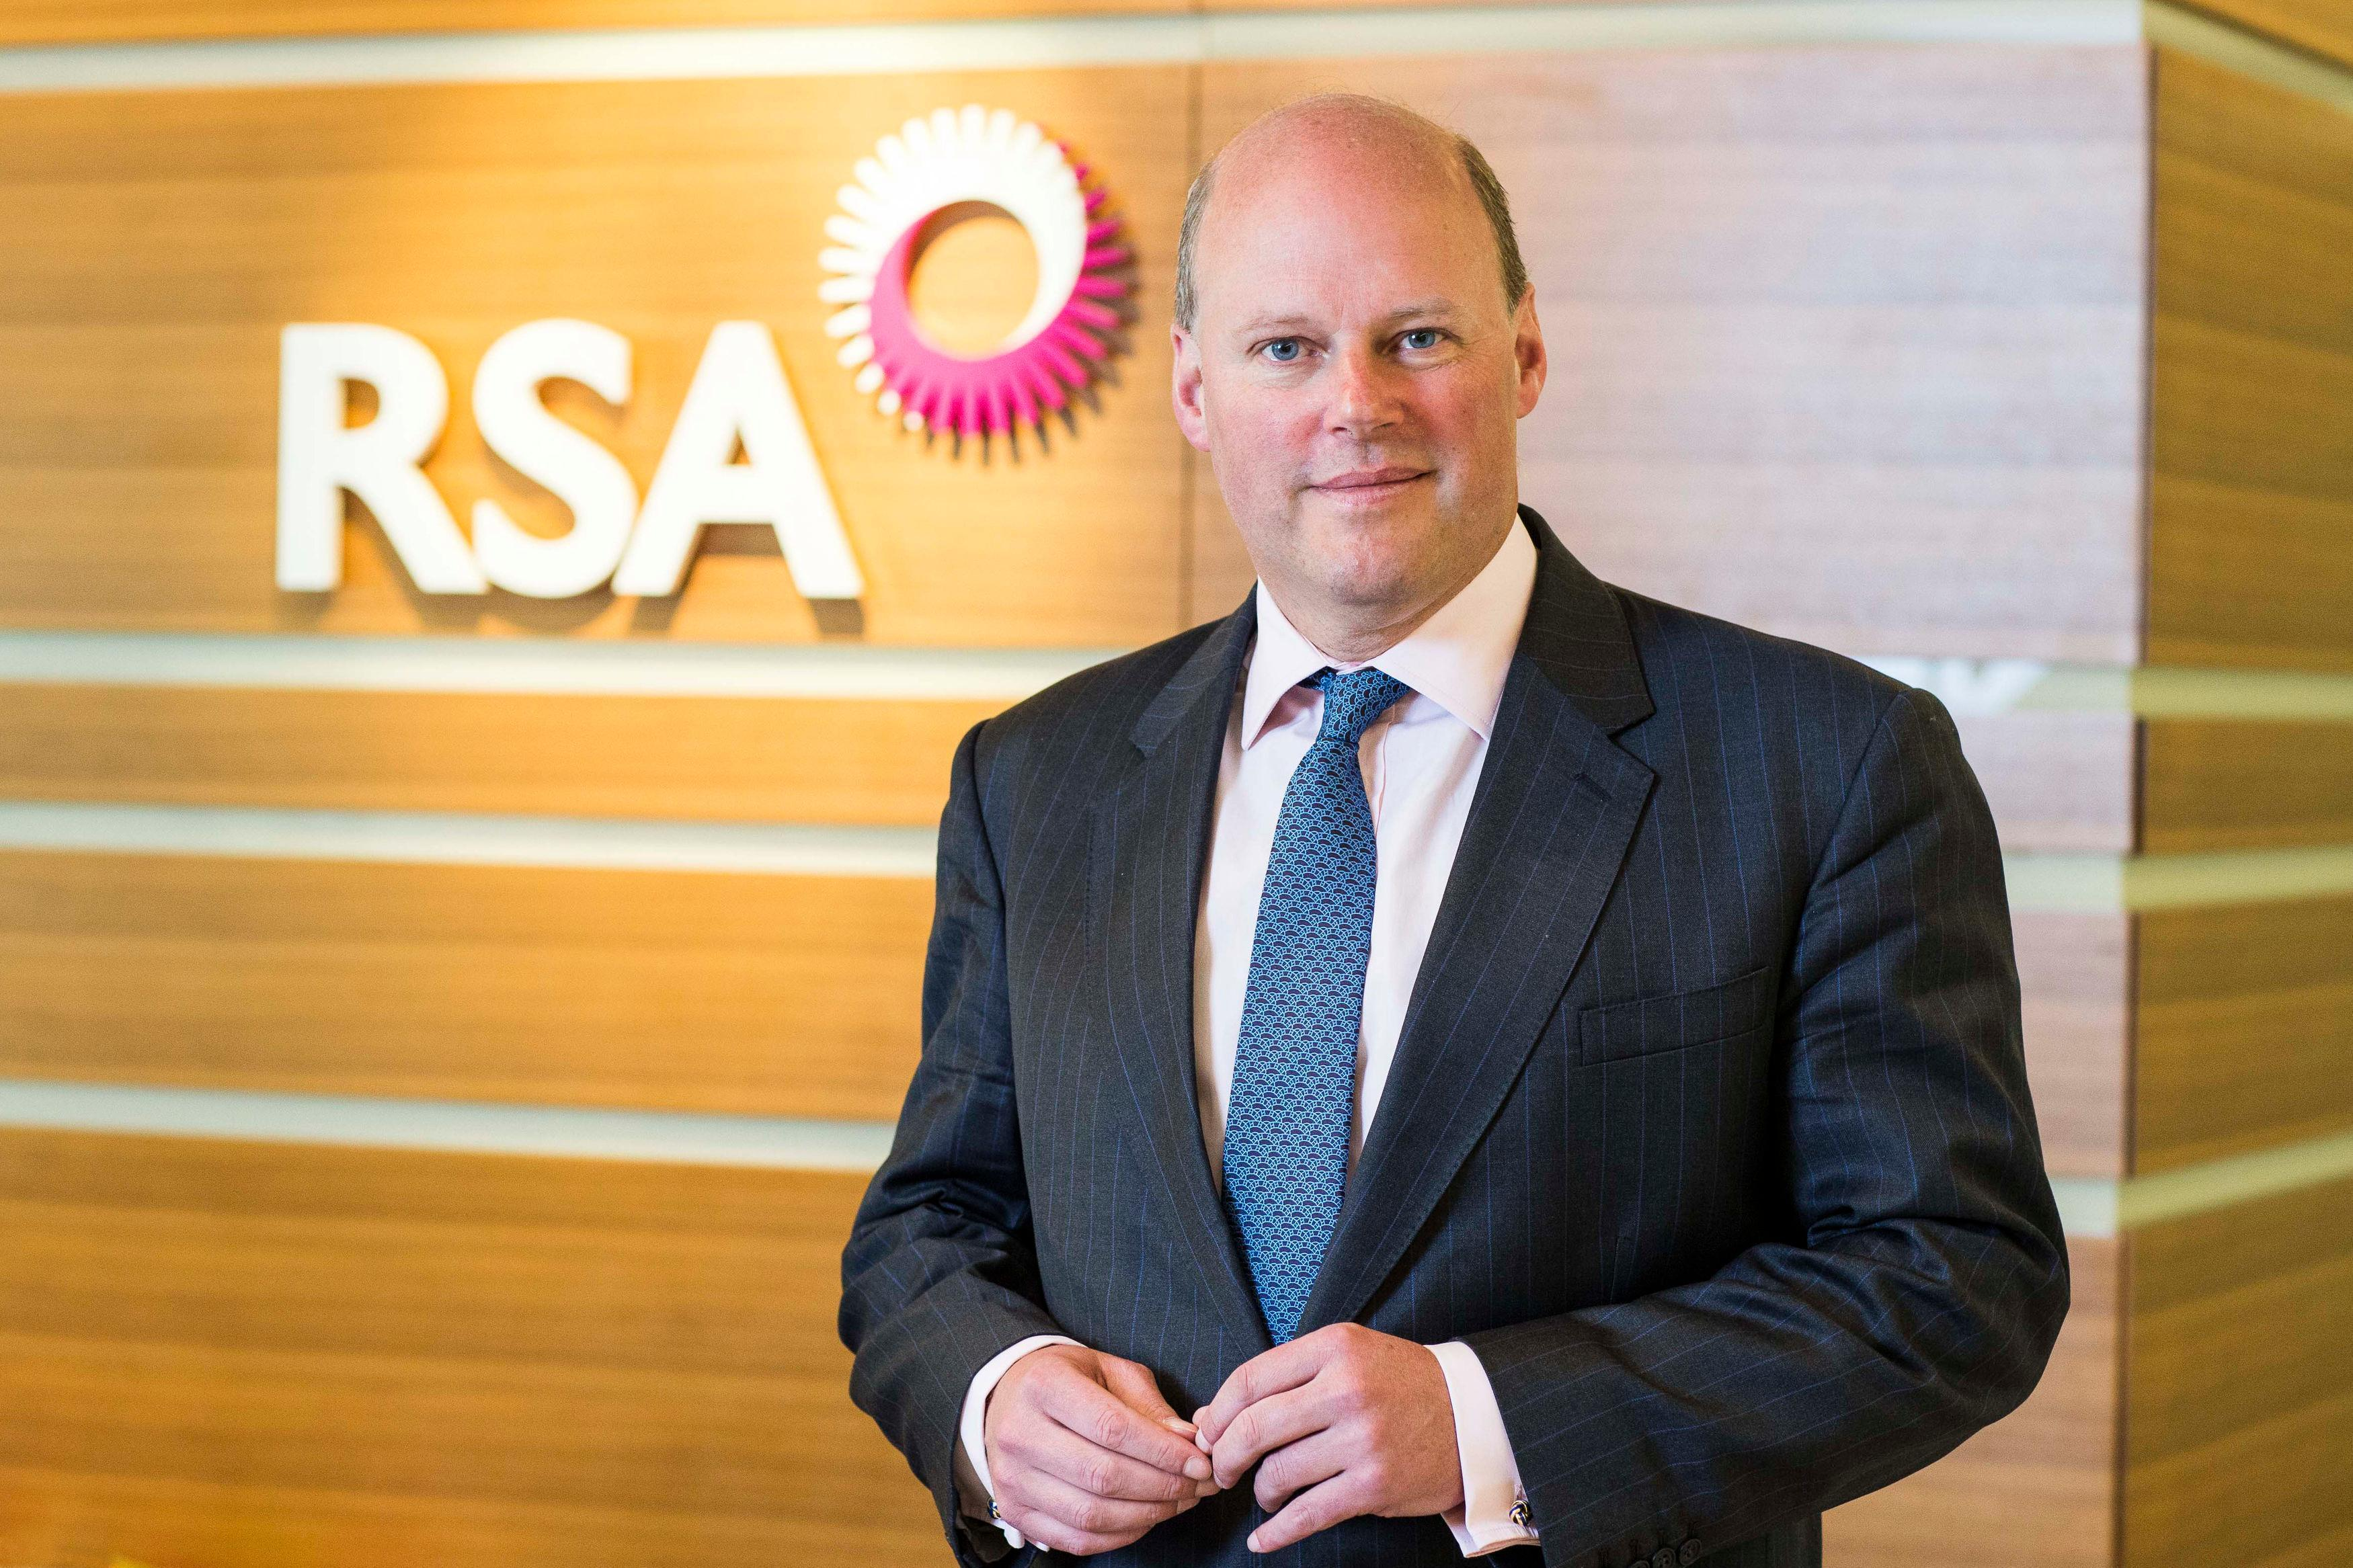 RSA in talks with Intact and Tryg over £7bn takeover deal